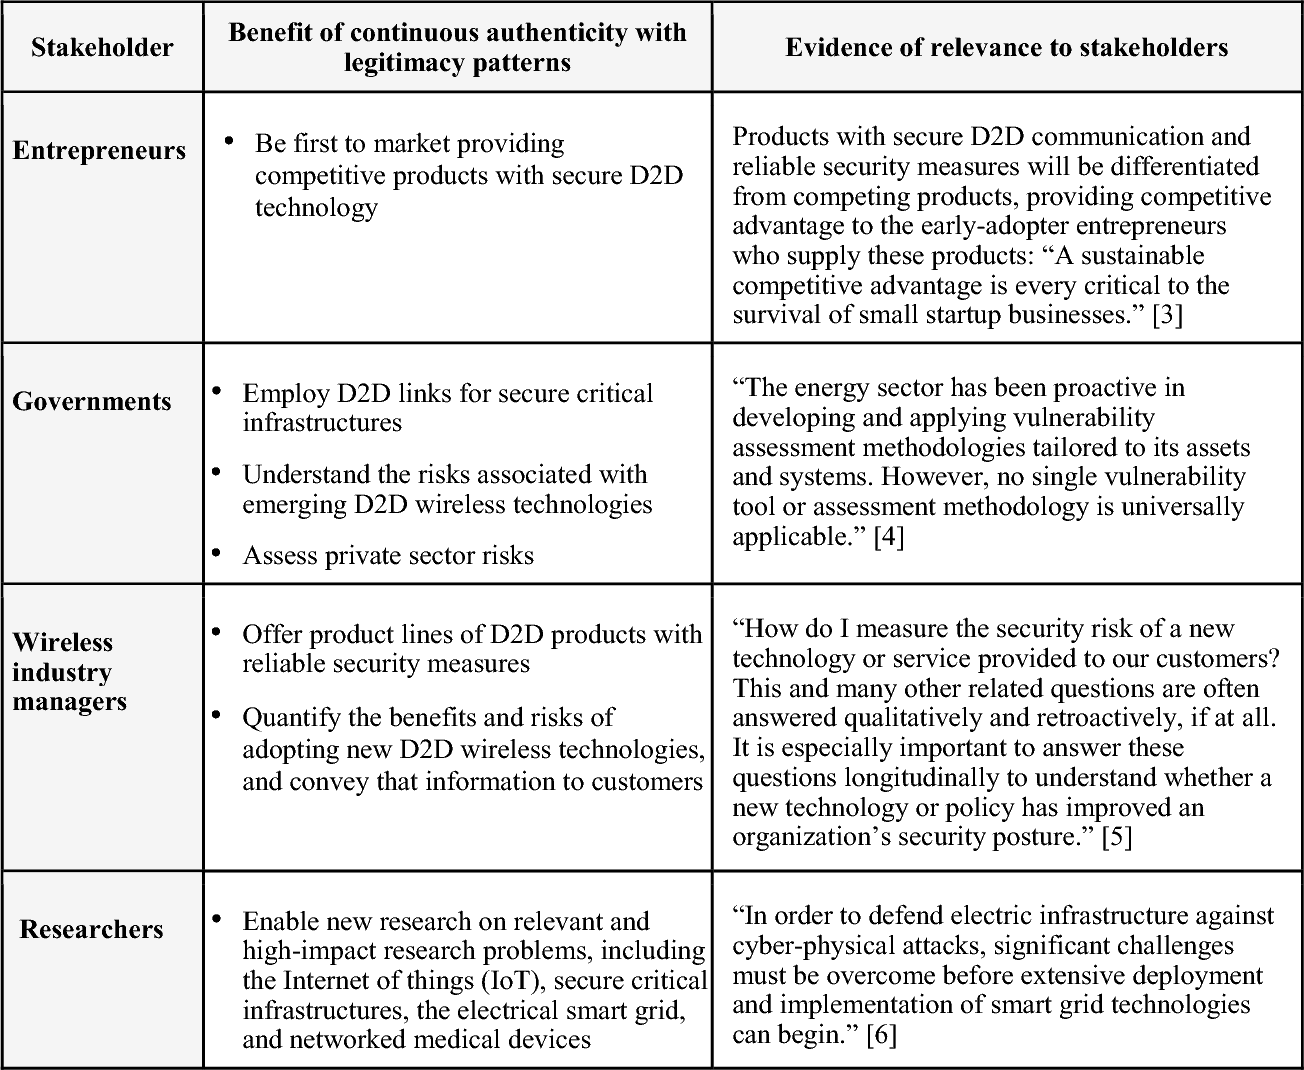 Table 1. Relevance of this research to stakeholders